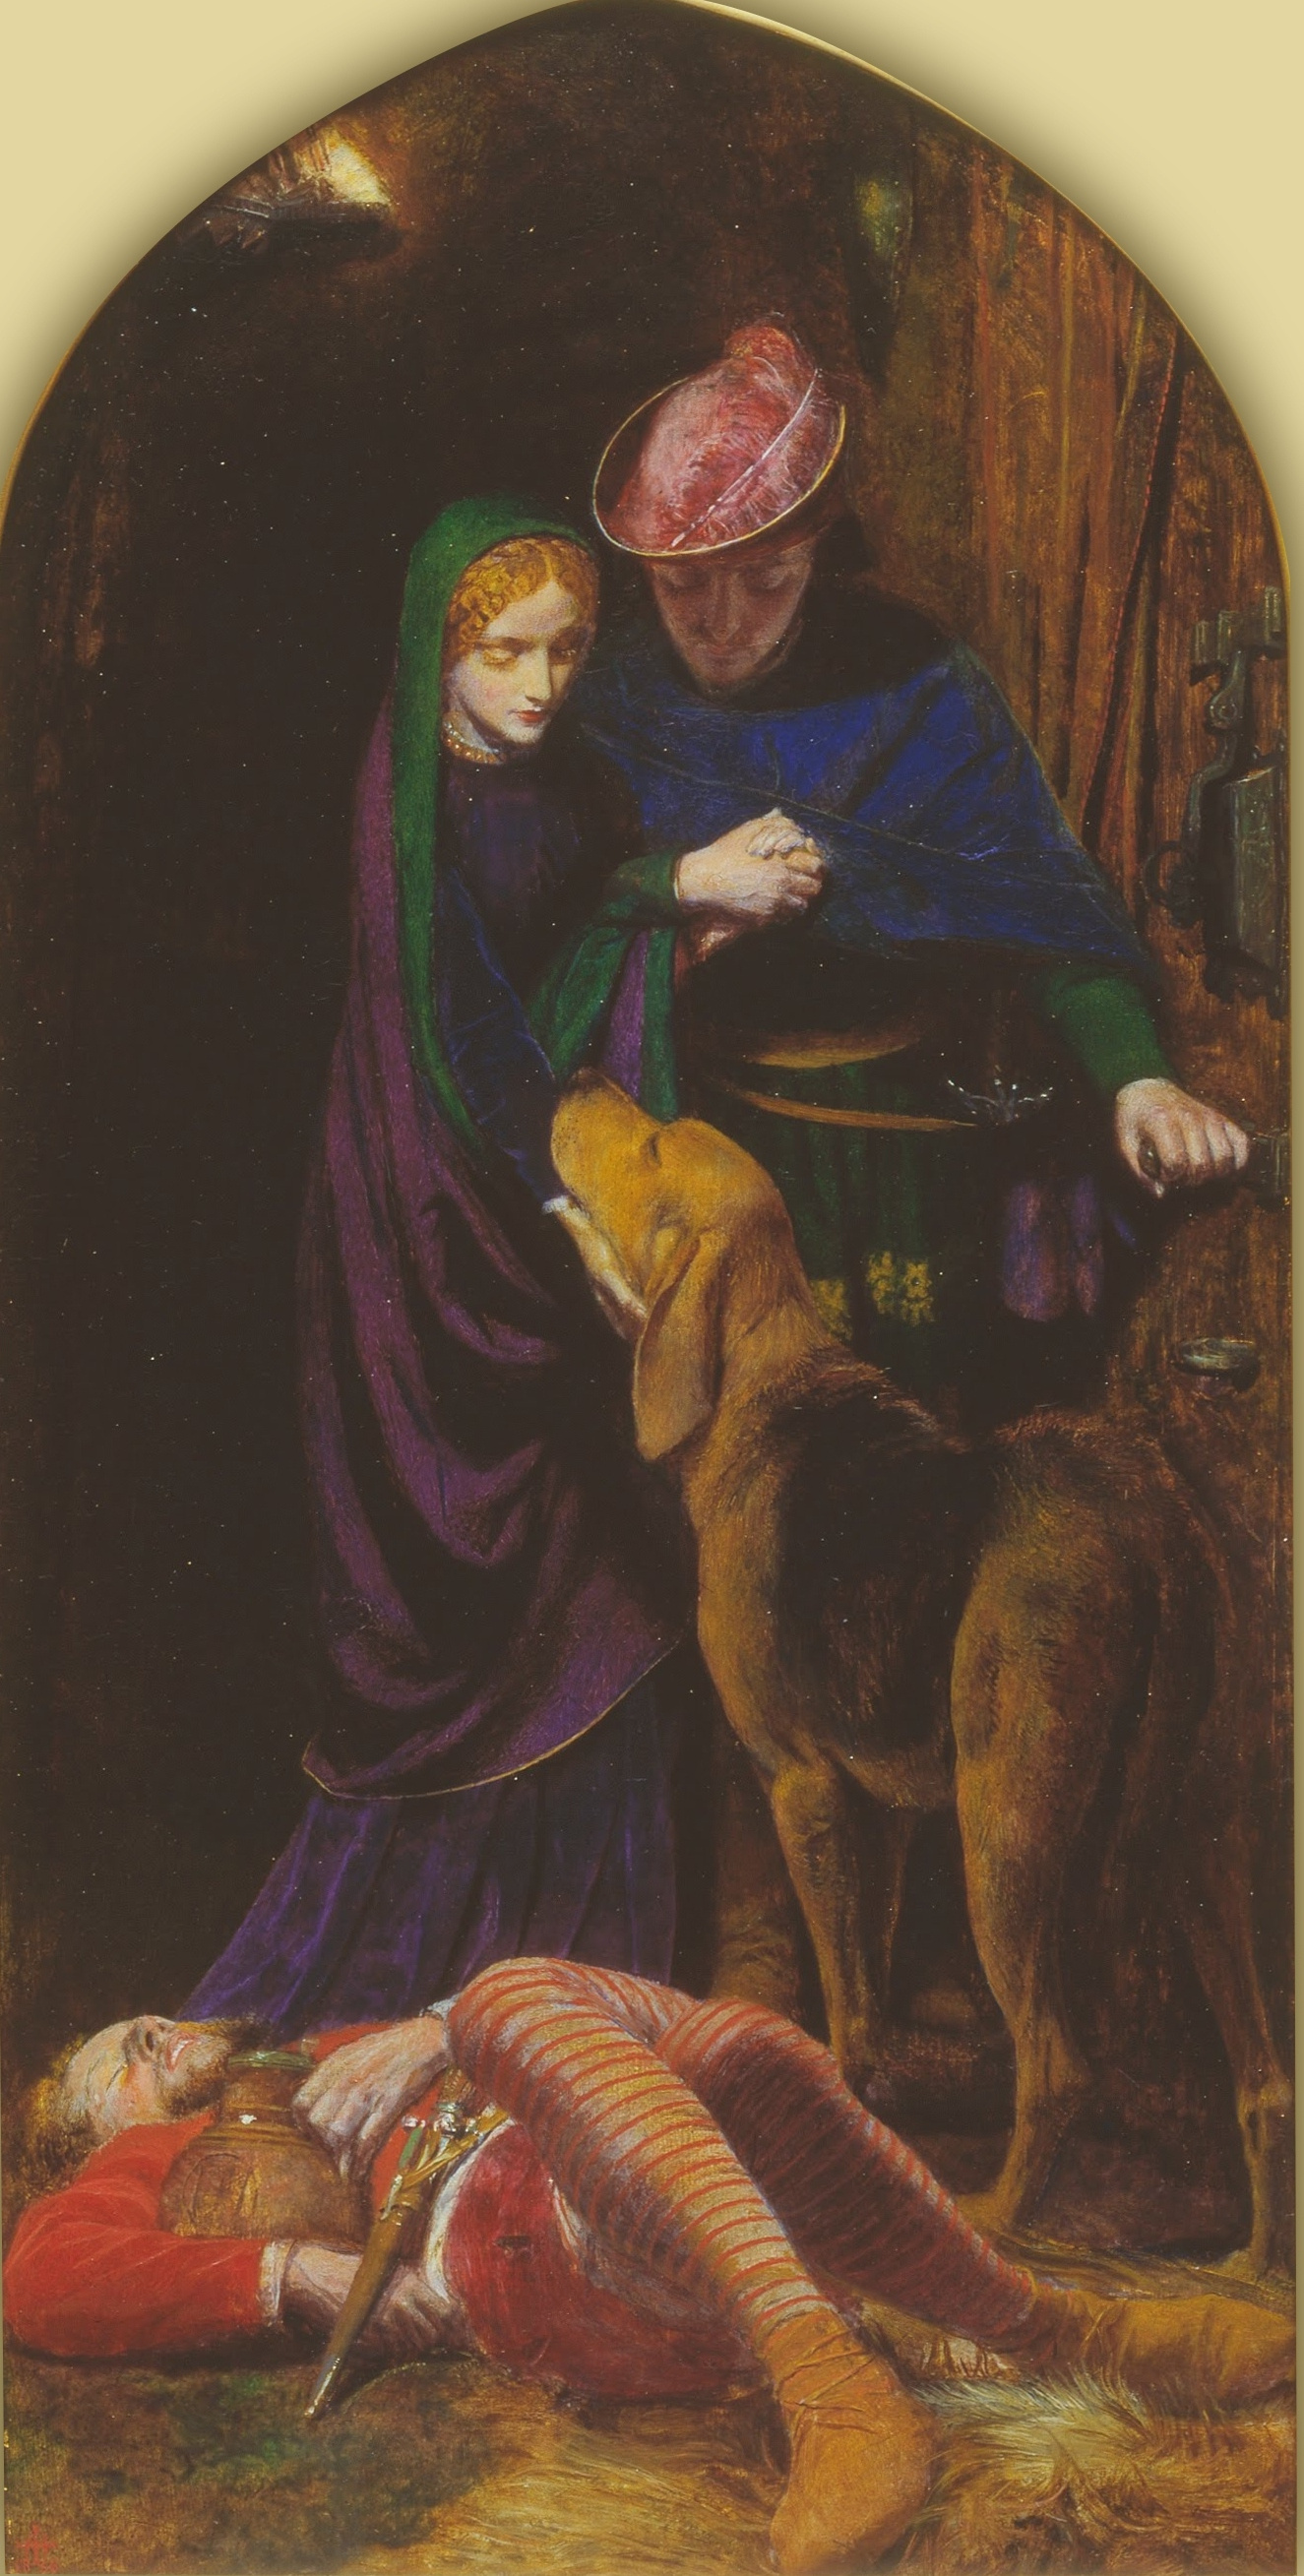 Arthur Hughes. Triptych: Eve of St. Agnes Day. Right panel